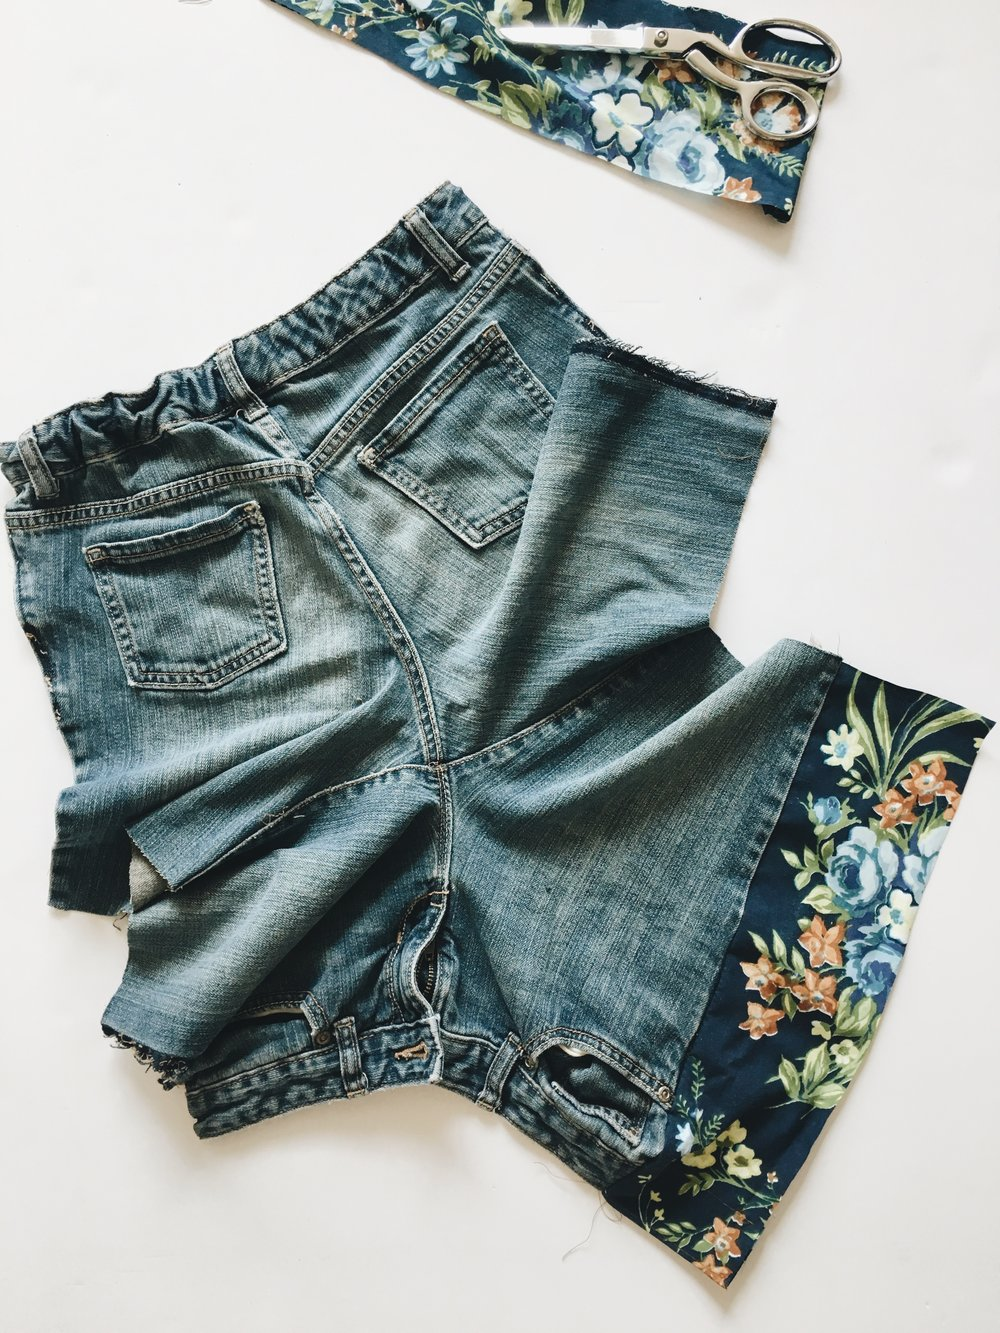 How to make your own boho style jean cut-offs by bluecorduoy.com